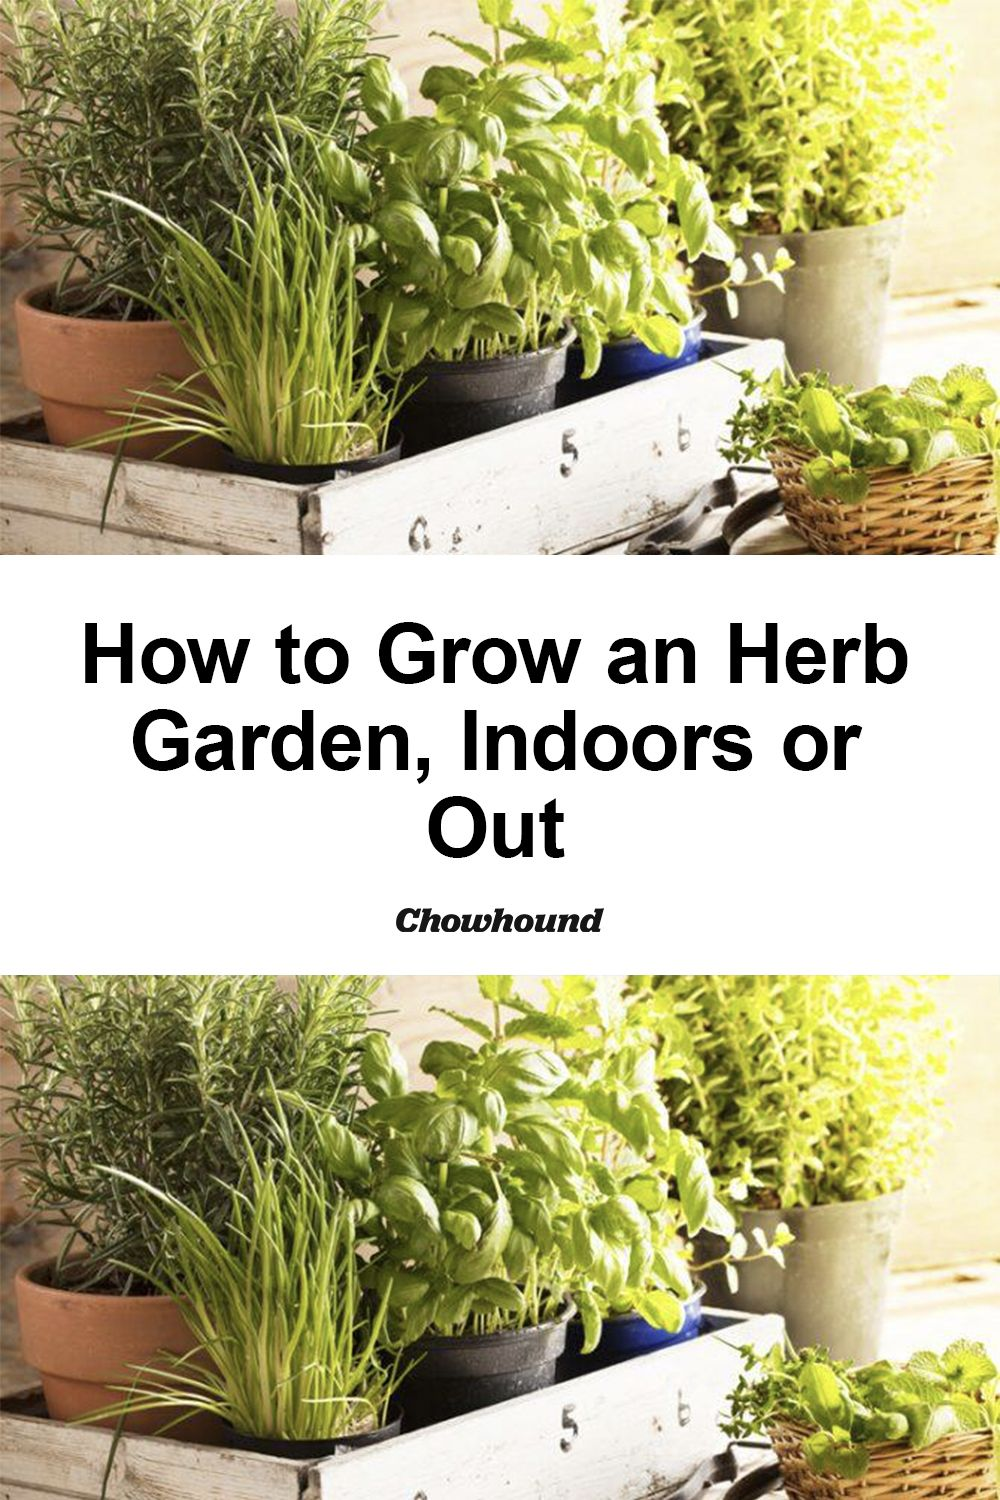 How To Grow An Herb Garden Indoors Or Out Outdoor Herb Garden Indoor Herb Garden Vertical Herb Gardens